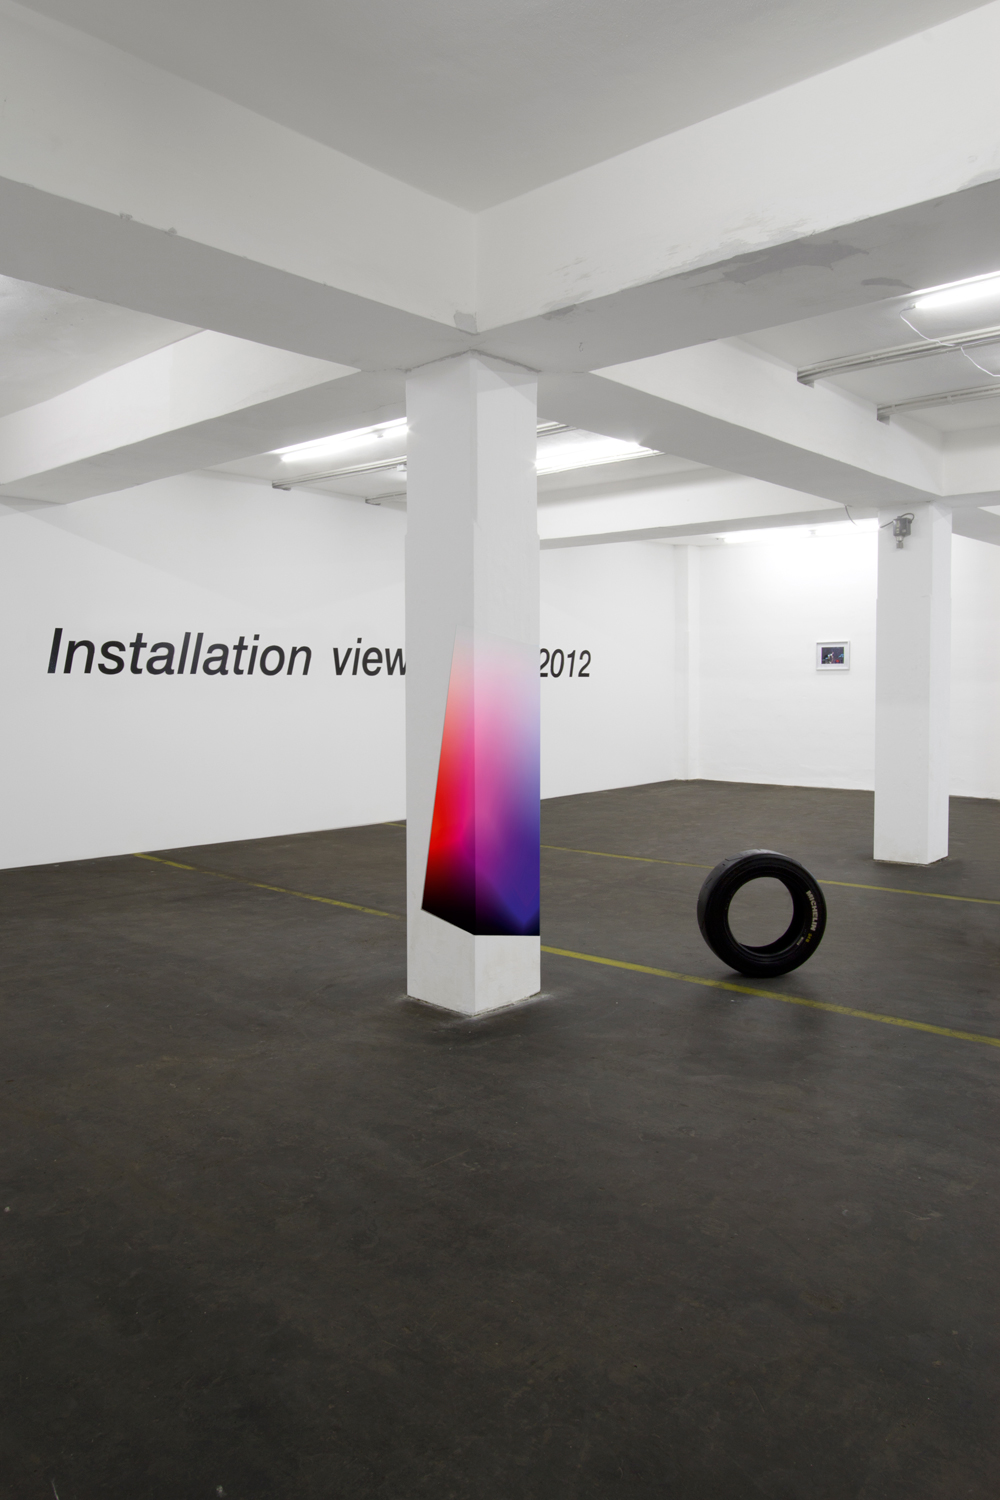 Exhibition view from Fool Disclosure